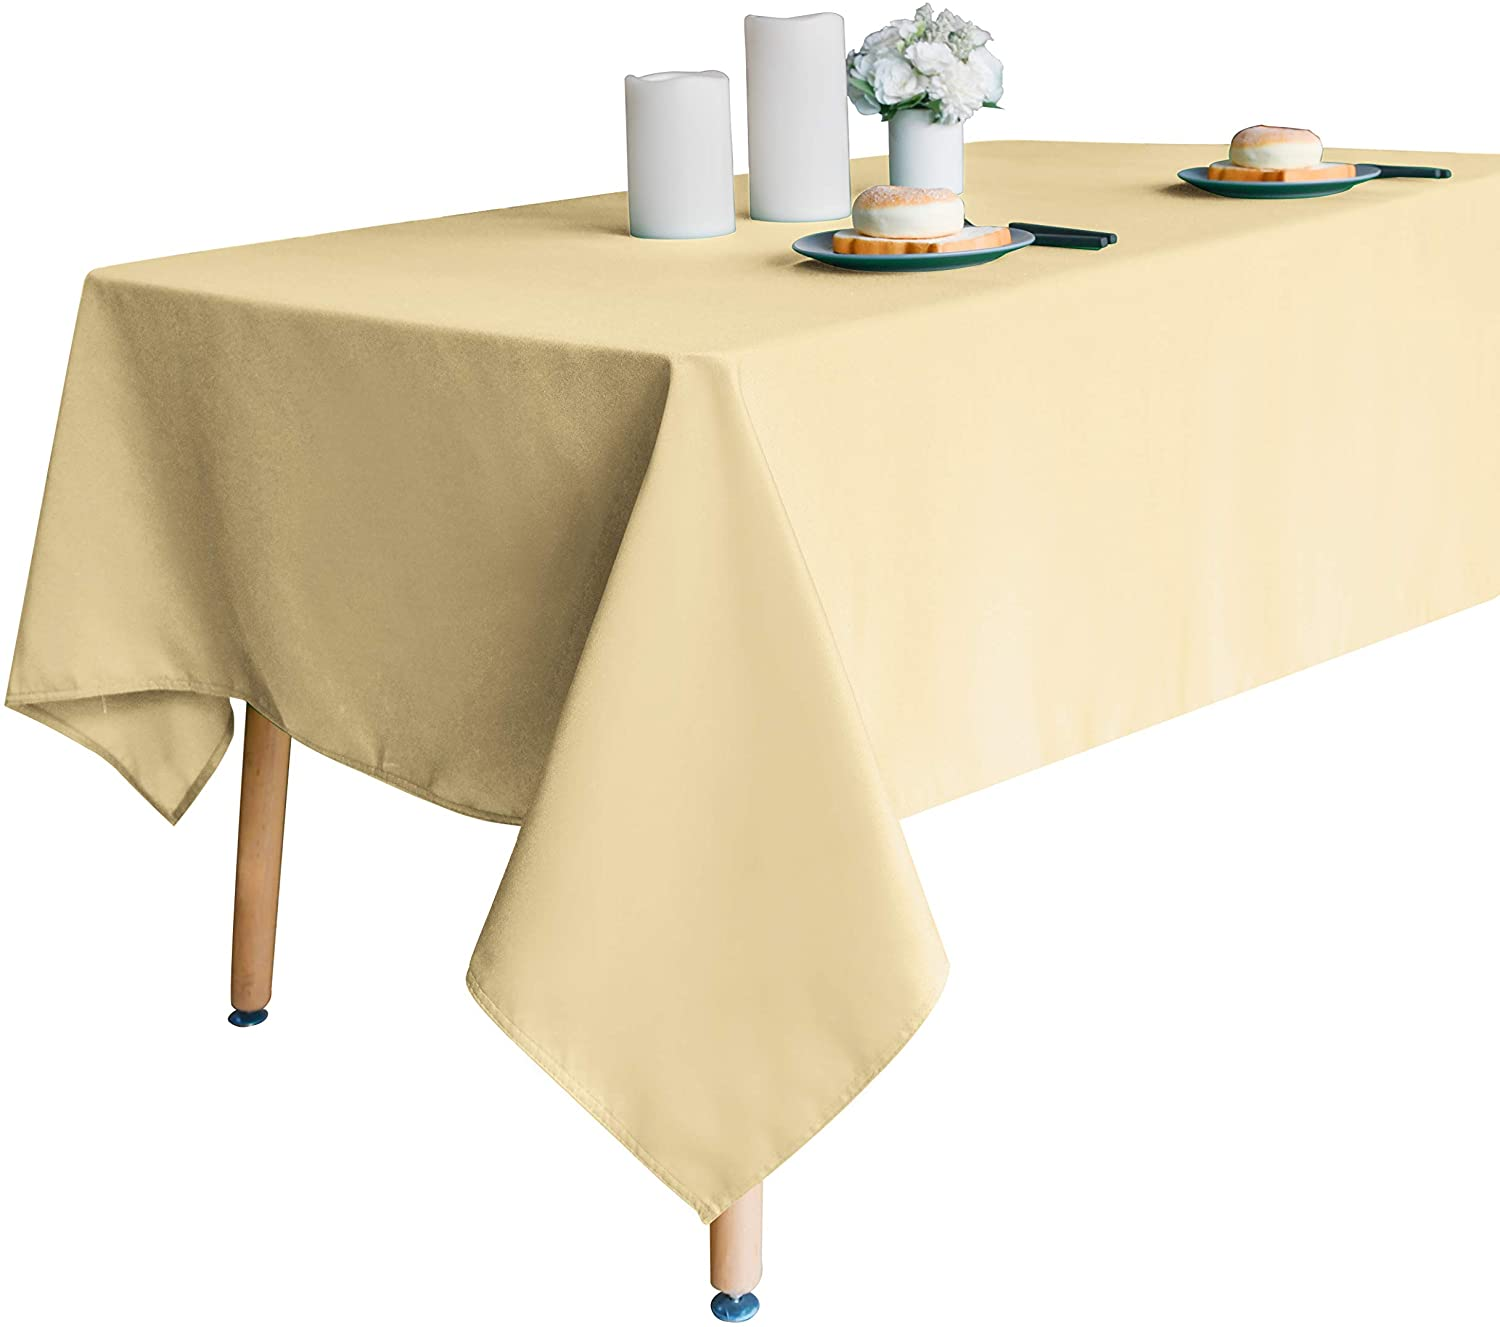 Obstal 210GSM Rectangle Table Cloth, Water Resistance Microfiber Tablecloth, Decorative Fabric Table Cover for Outdoor and Indoor Use (Champagne, 60 x 84 Inch)